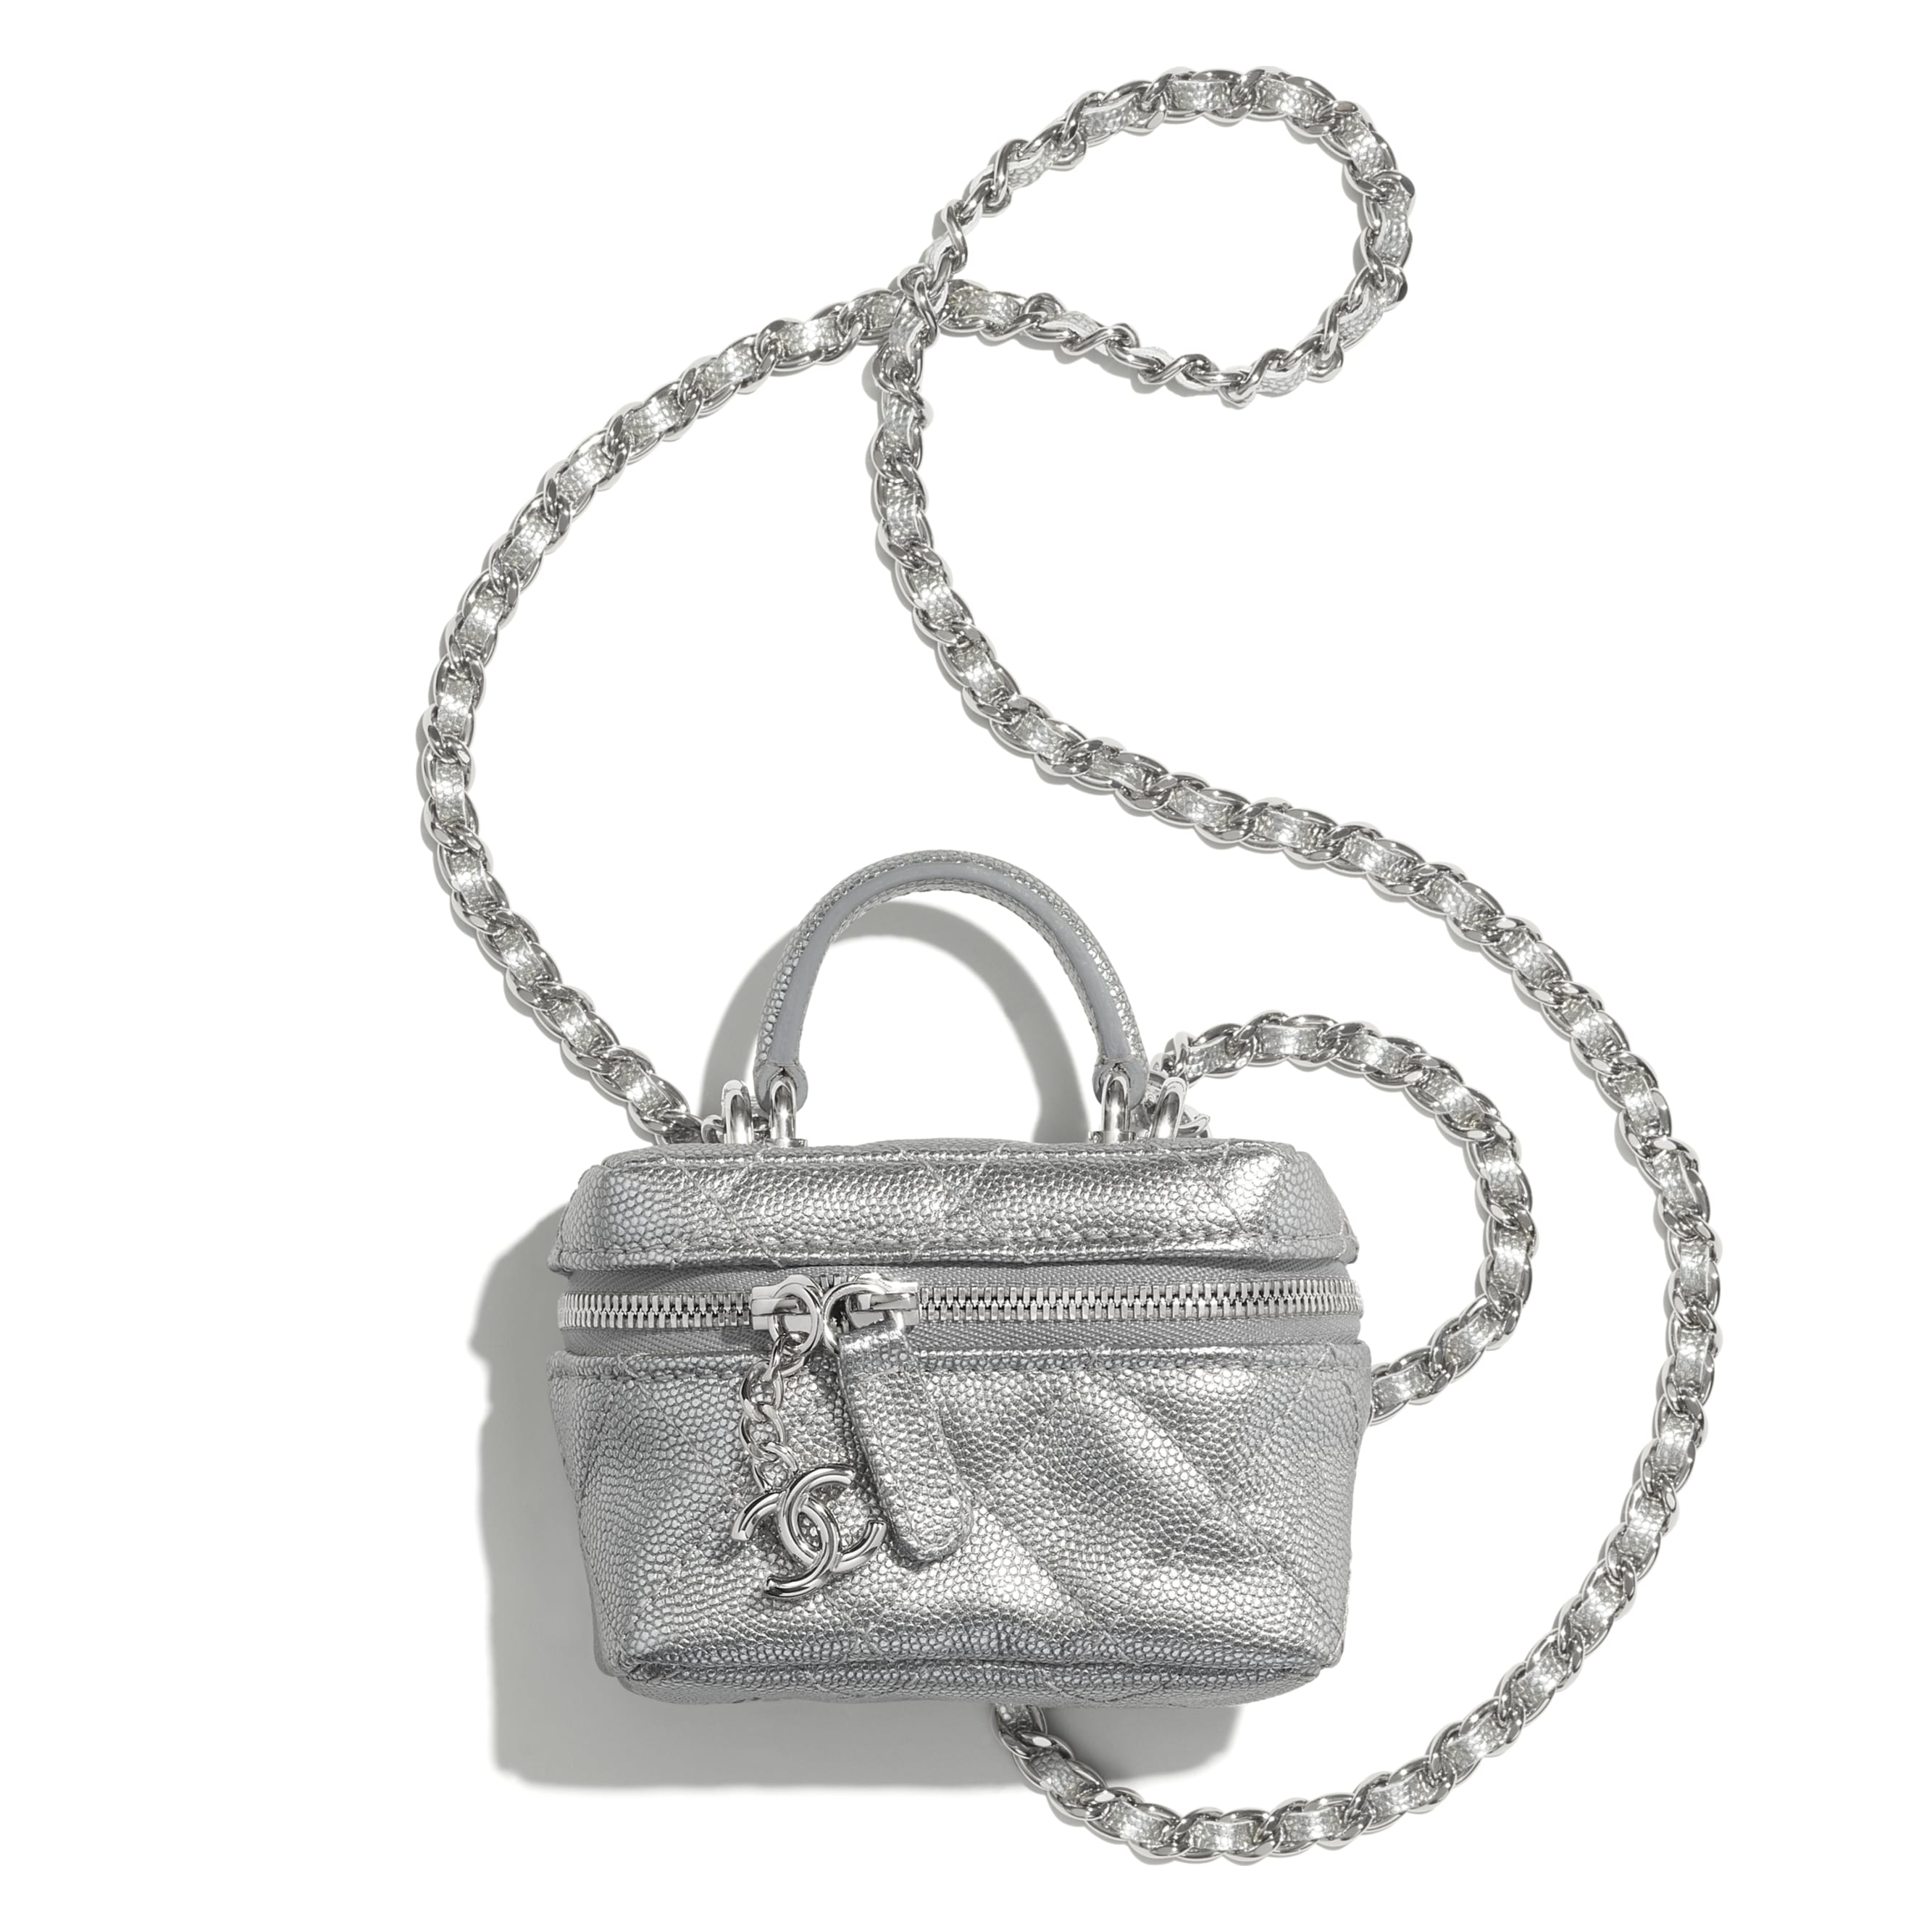 Small Vanity with Chain - Silver - Metallic Grained Calfskin & Silver-Tone Metal - CHANEL - Default view - see standard sized version